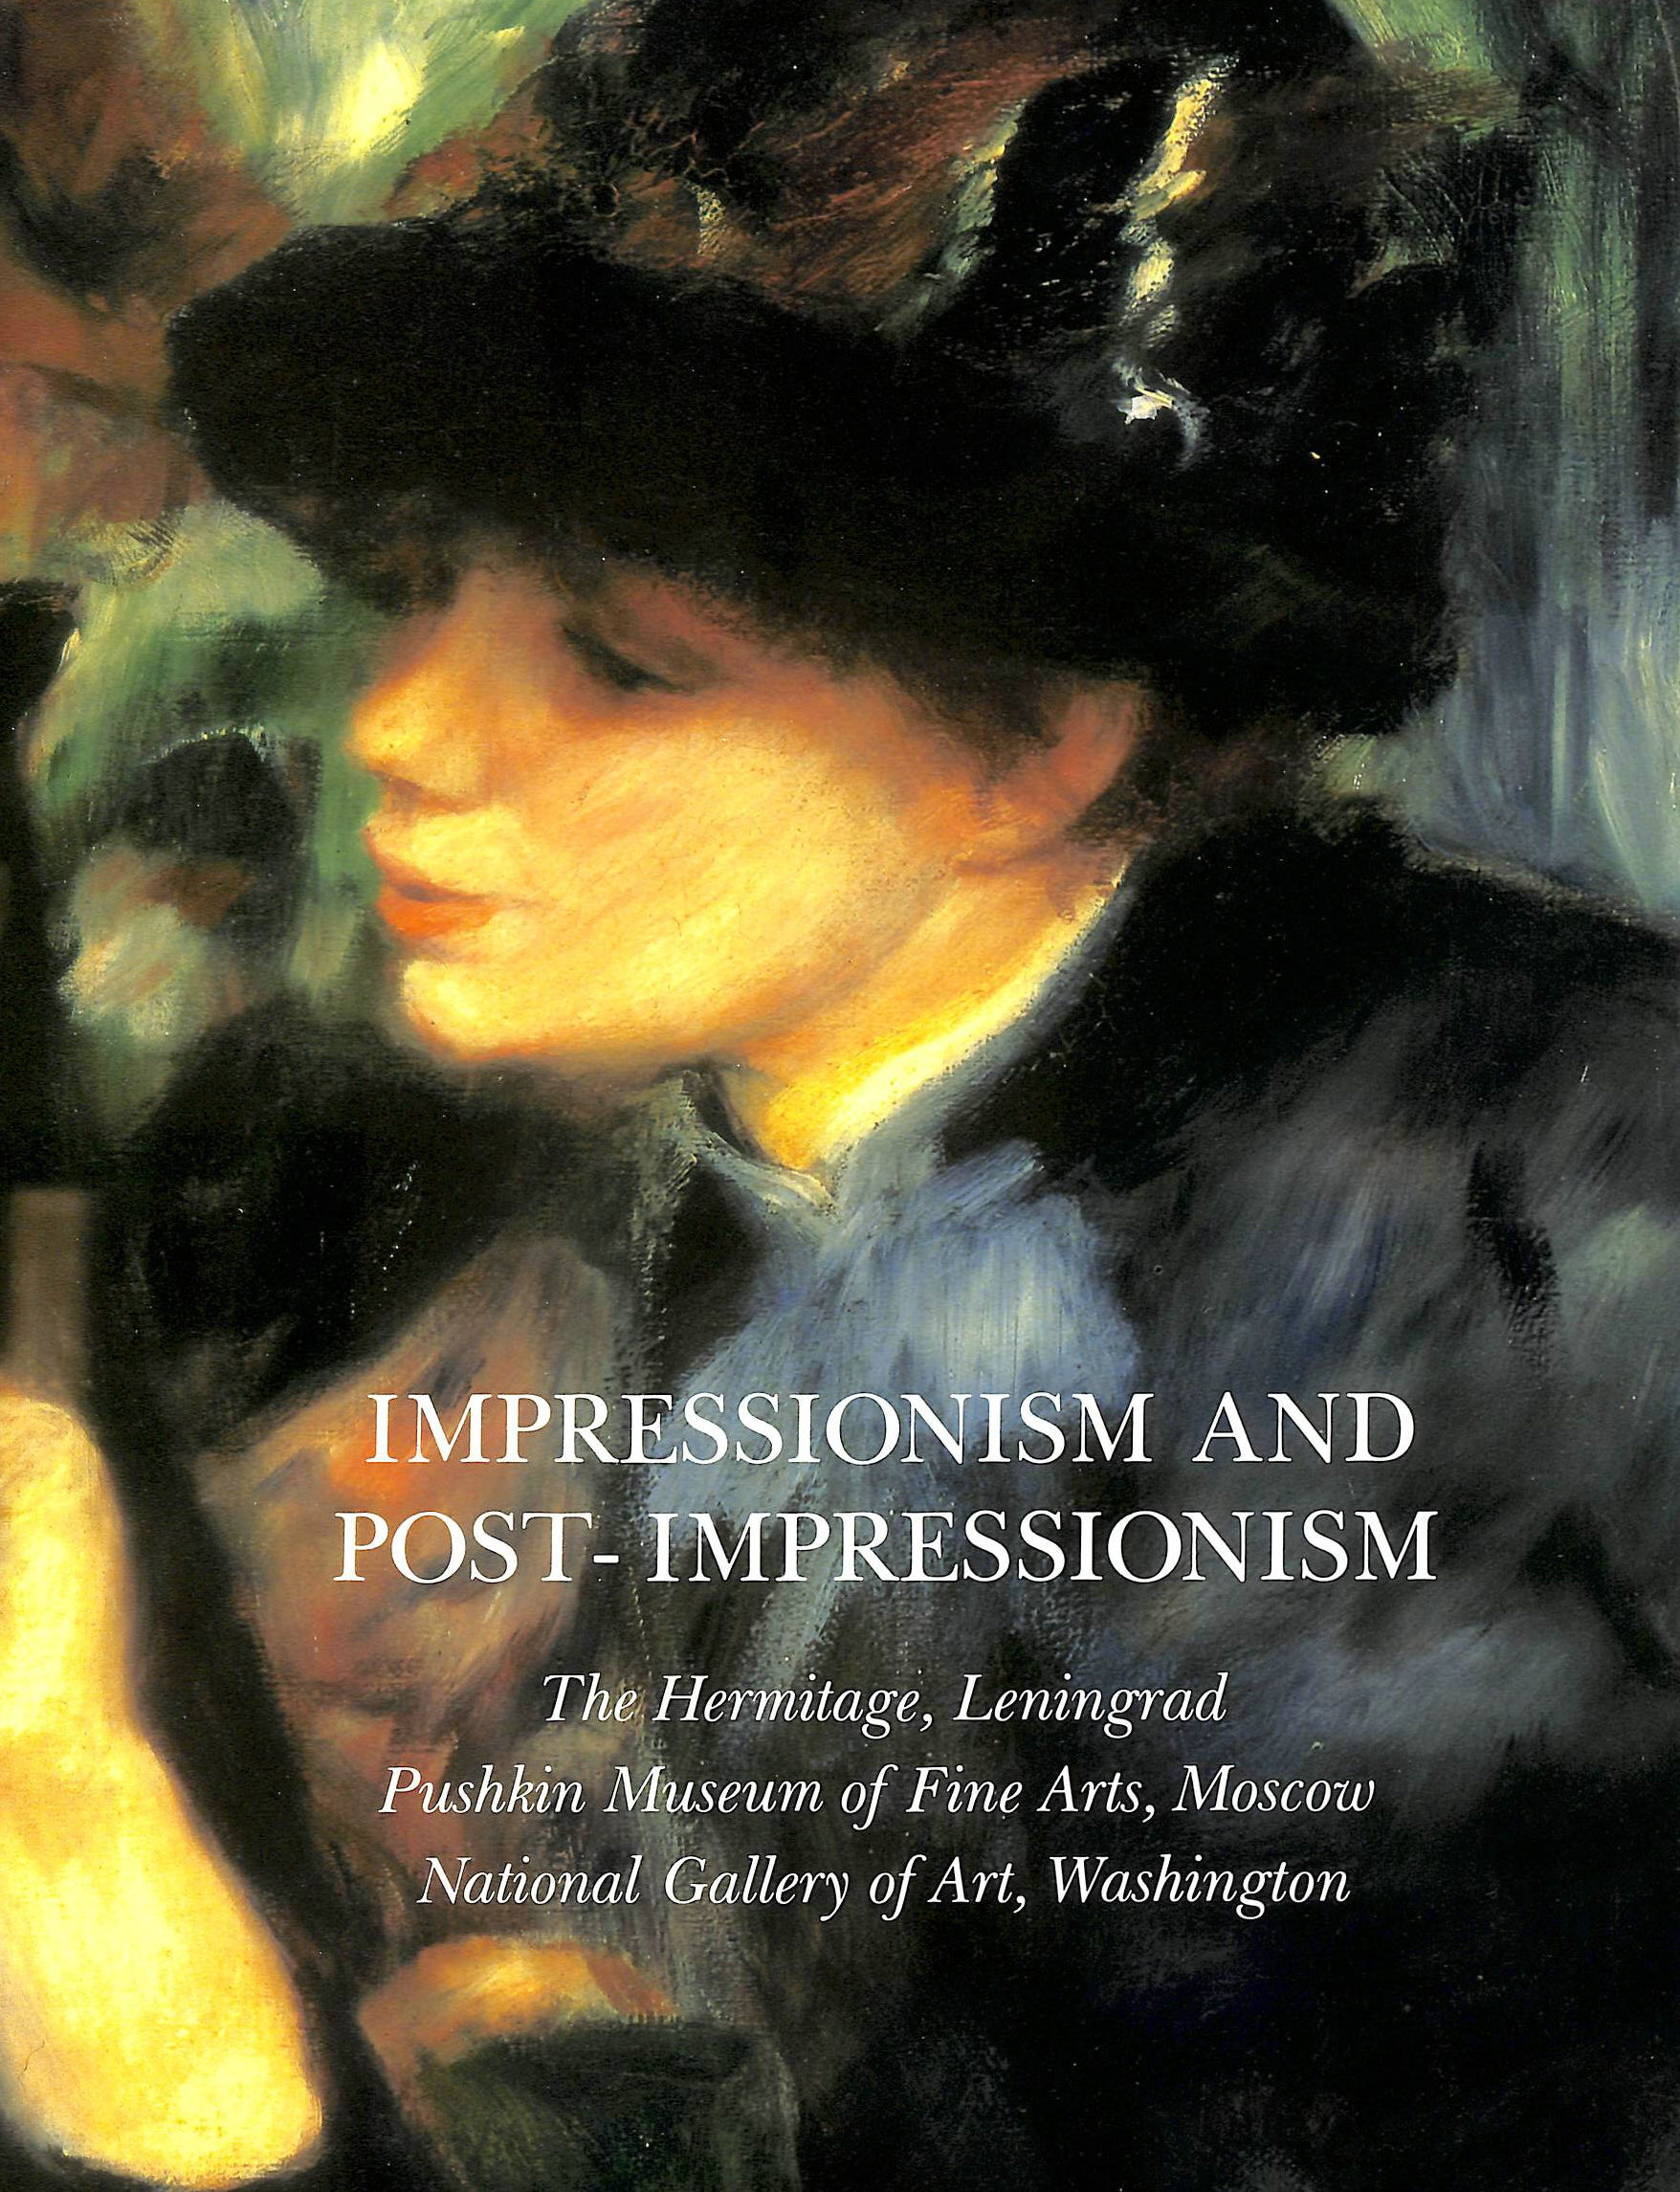 Image for Impressionism and Post-Impressionism: The Hermitage, Leningrad, the Pushkin Museum of Fine Arts, Moscow, and the National Gallery of Art, Washington